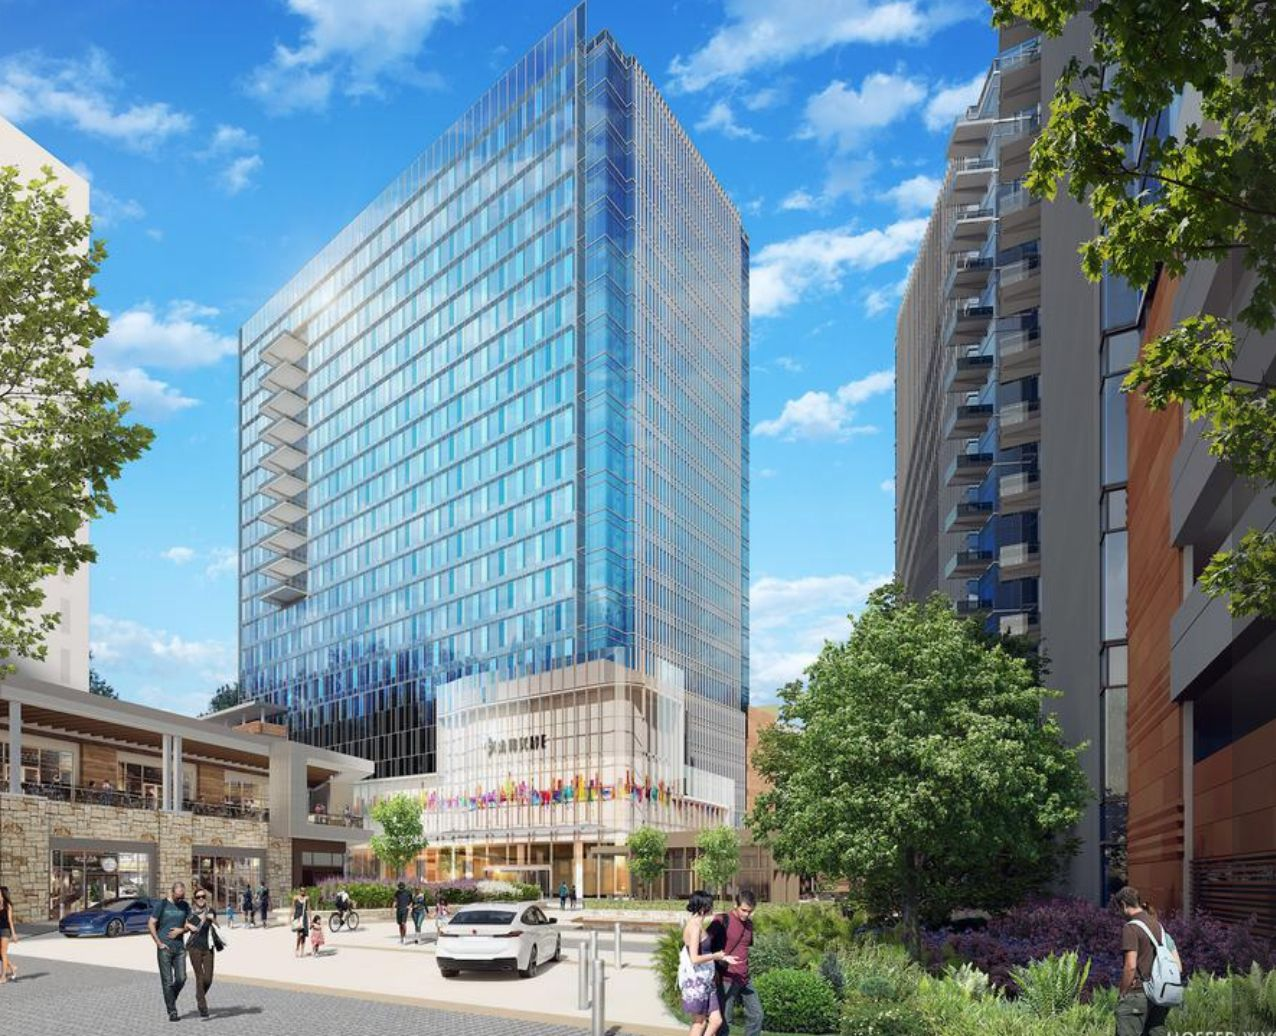 Developer Cawley Partners plans 1.5 million square feet of offices in the Grandscape project.